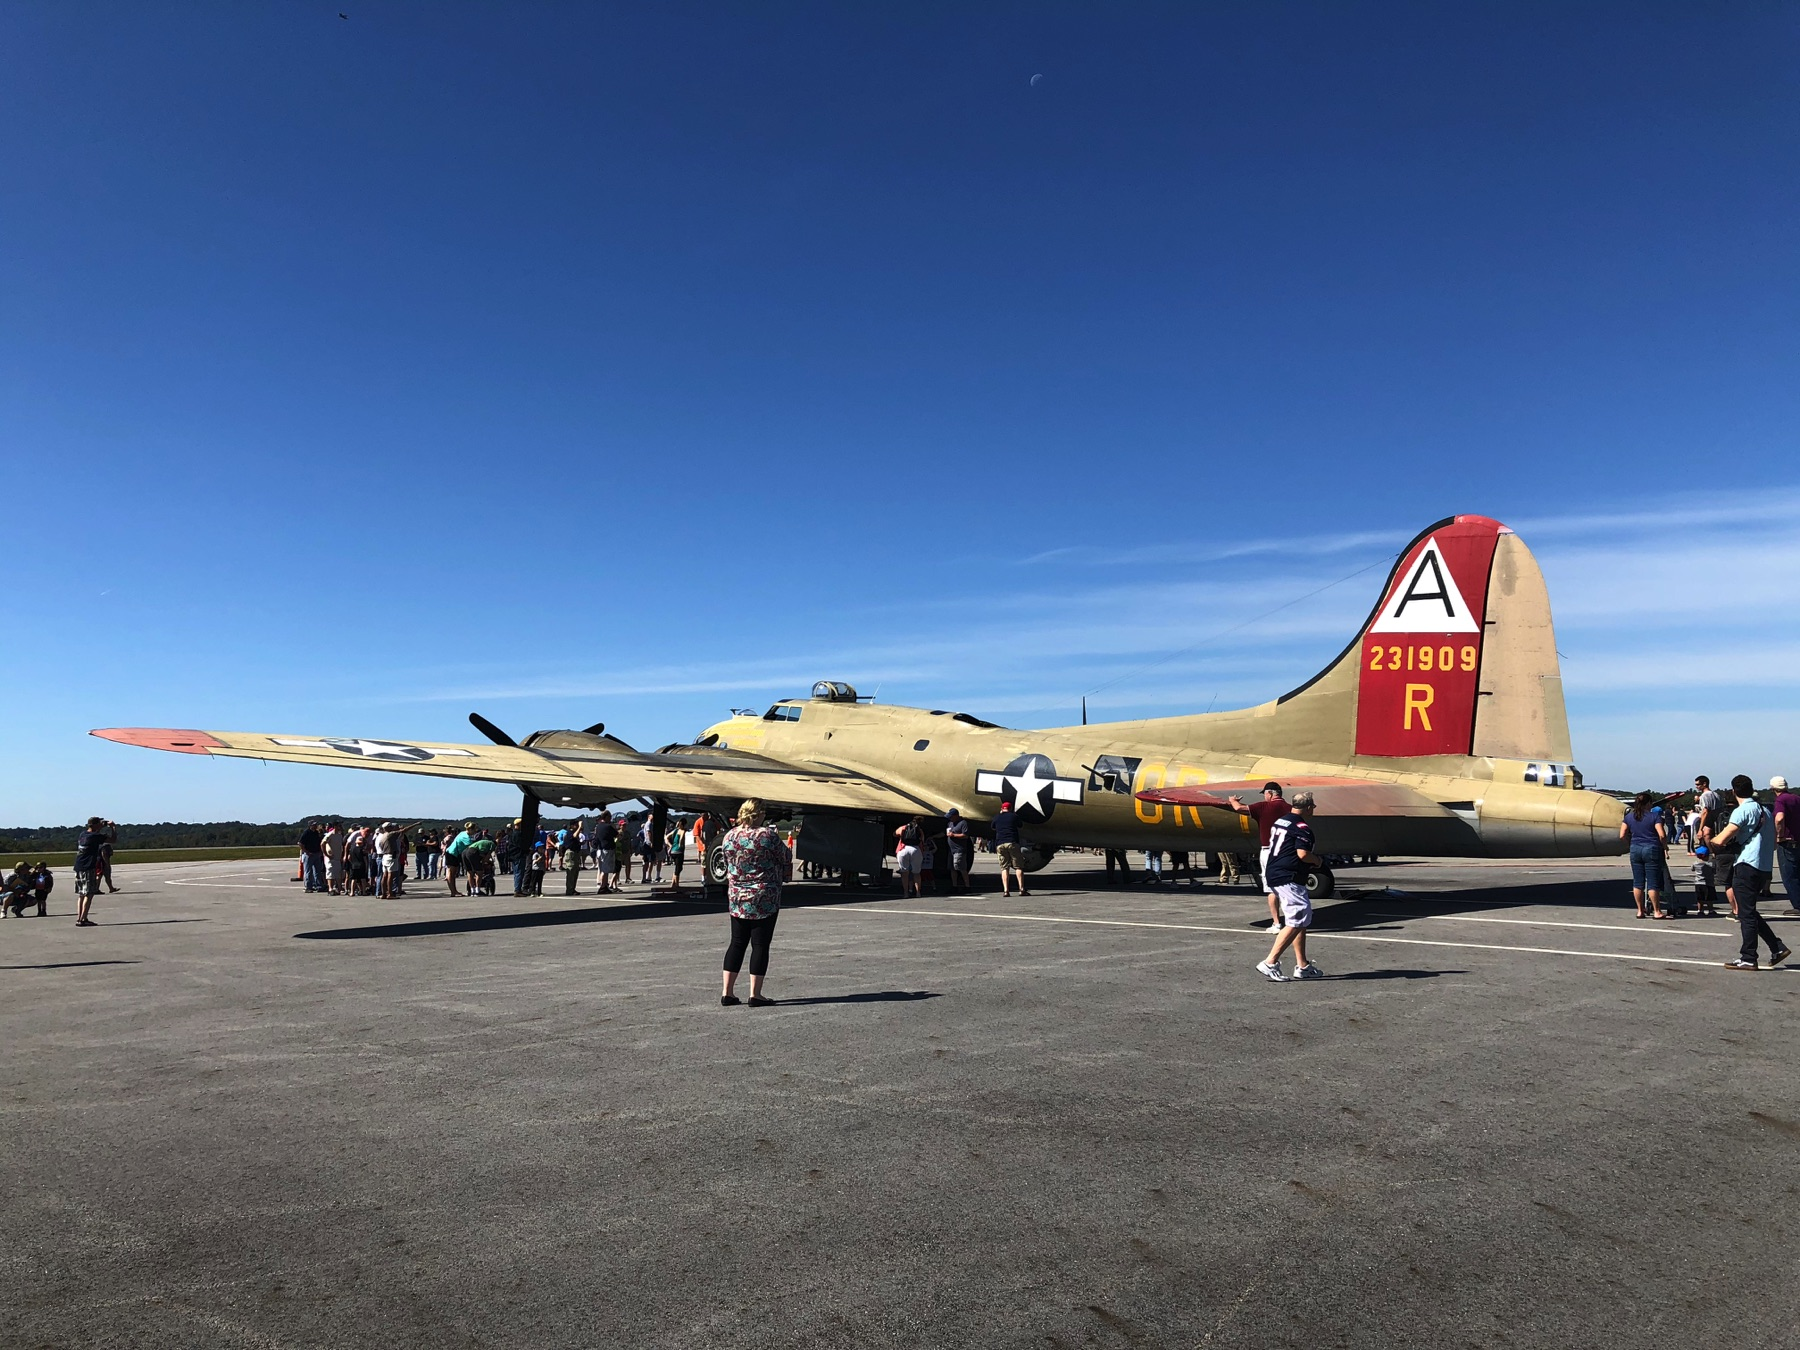 Collings Foundation B-17 at ORH on September 22, 2019.